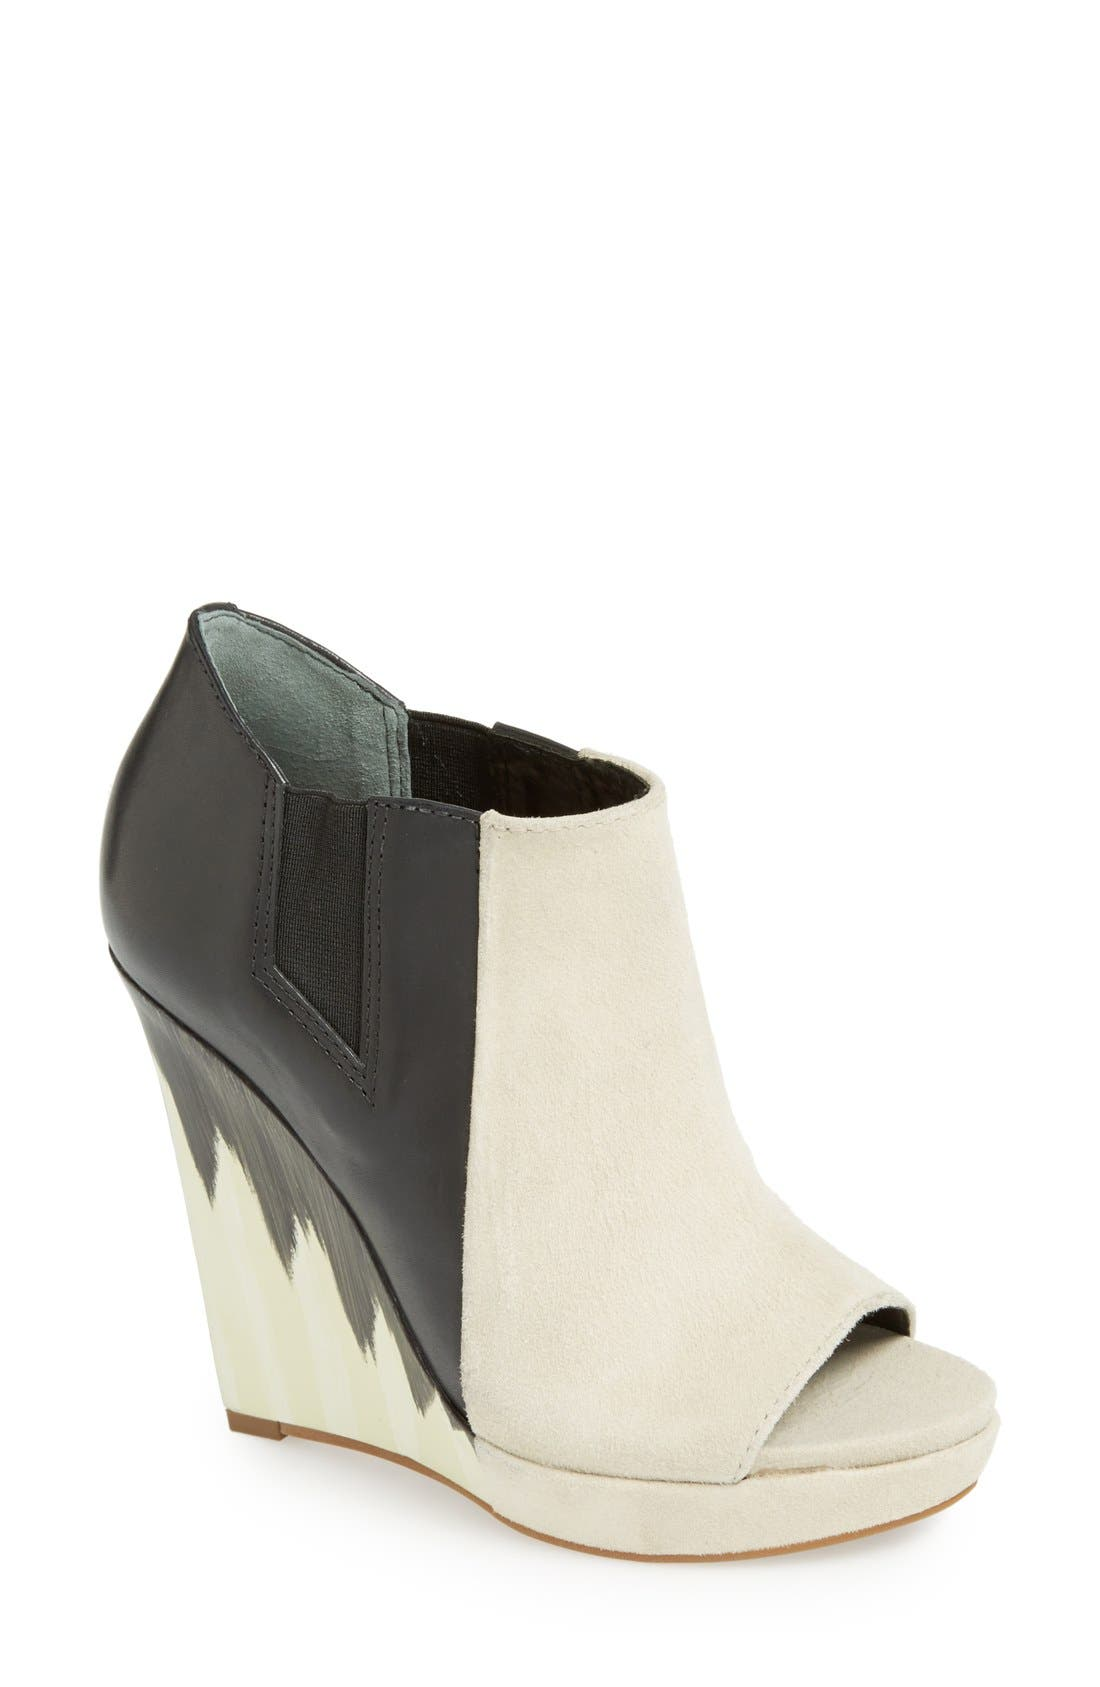 Alternate Image 1 Selected - Derek Lam 10 Crosby 'Gerri' Leather & Suede Open Toe Wedge Bootie